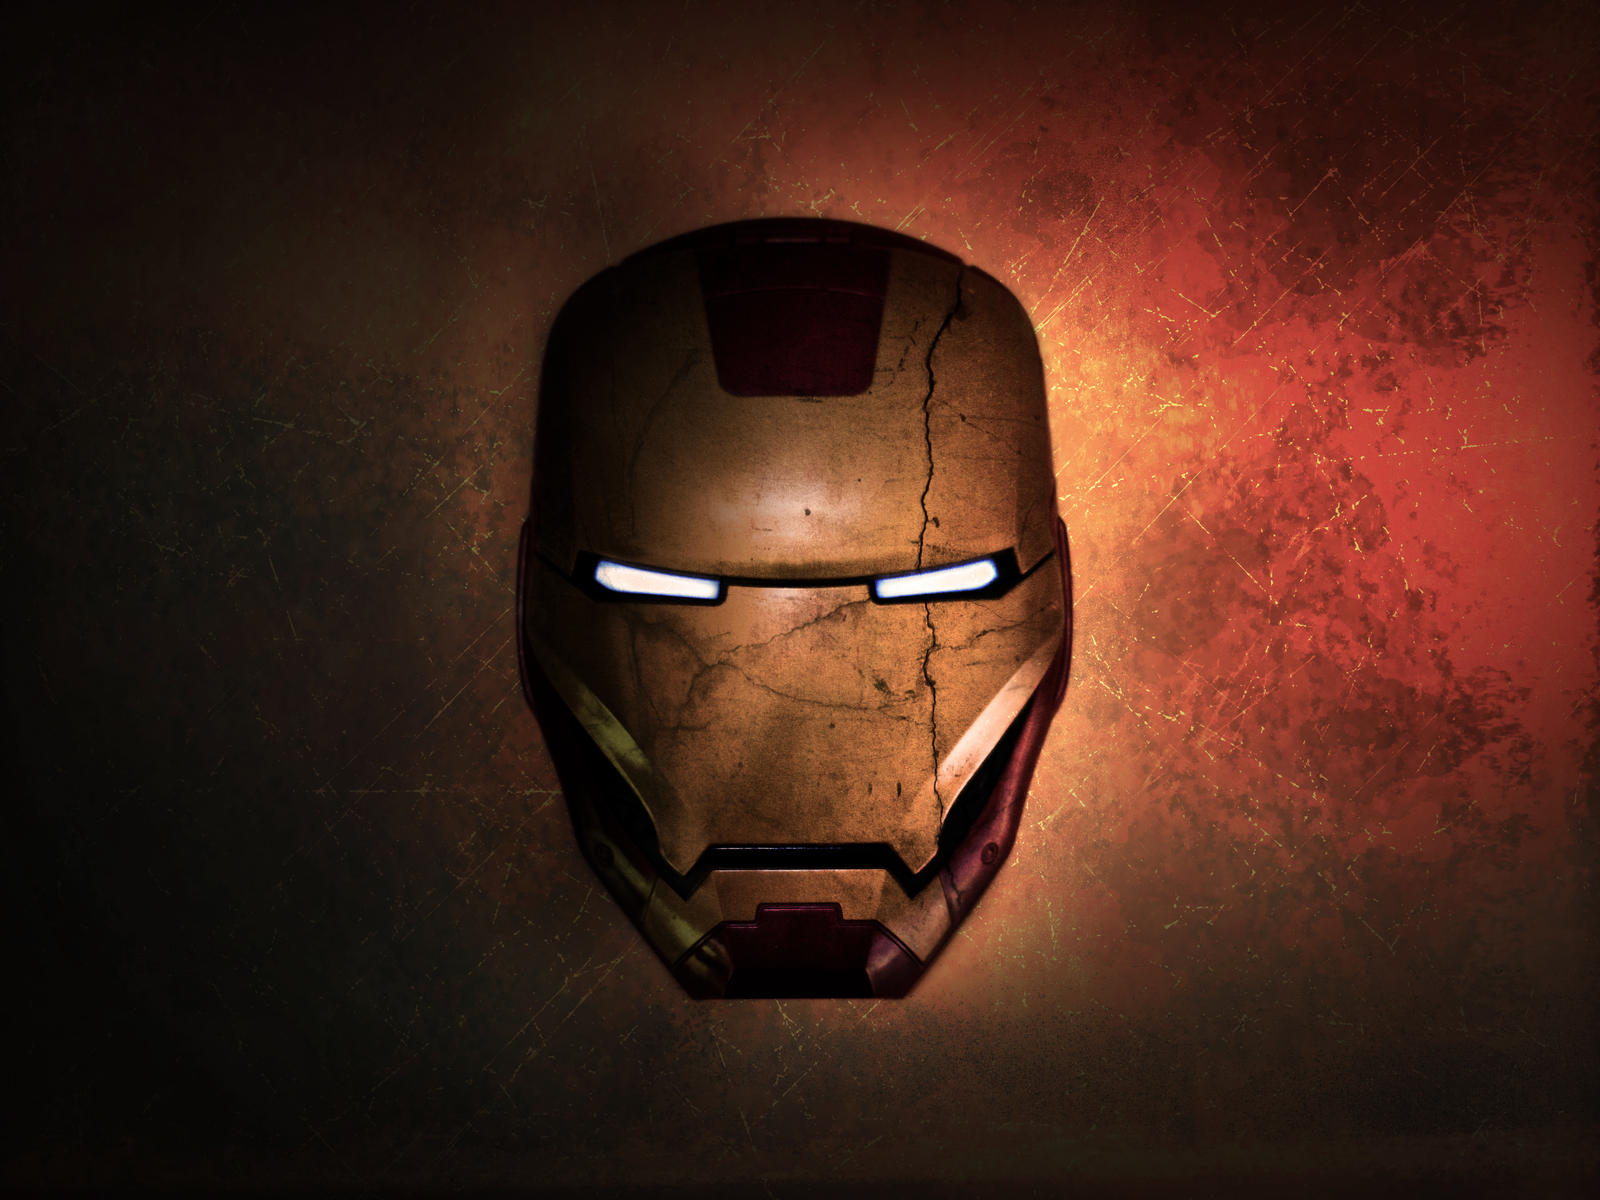 Ironman Mask by TommyGundersen on DeviantArt